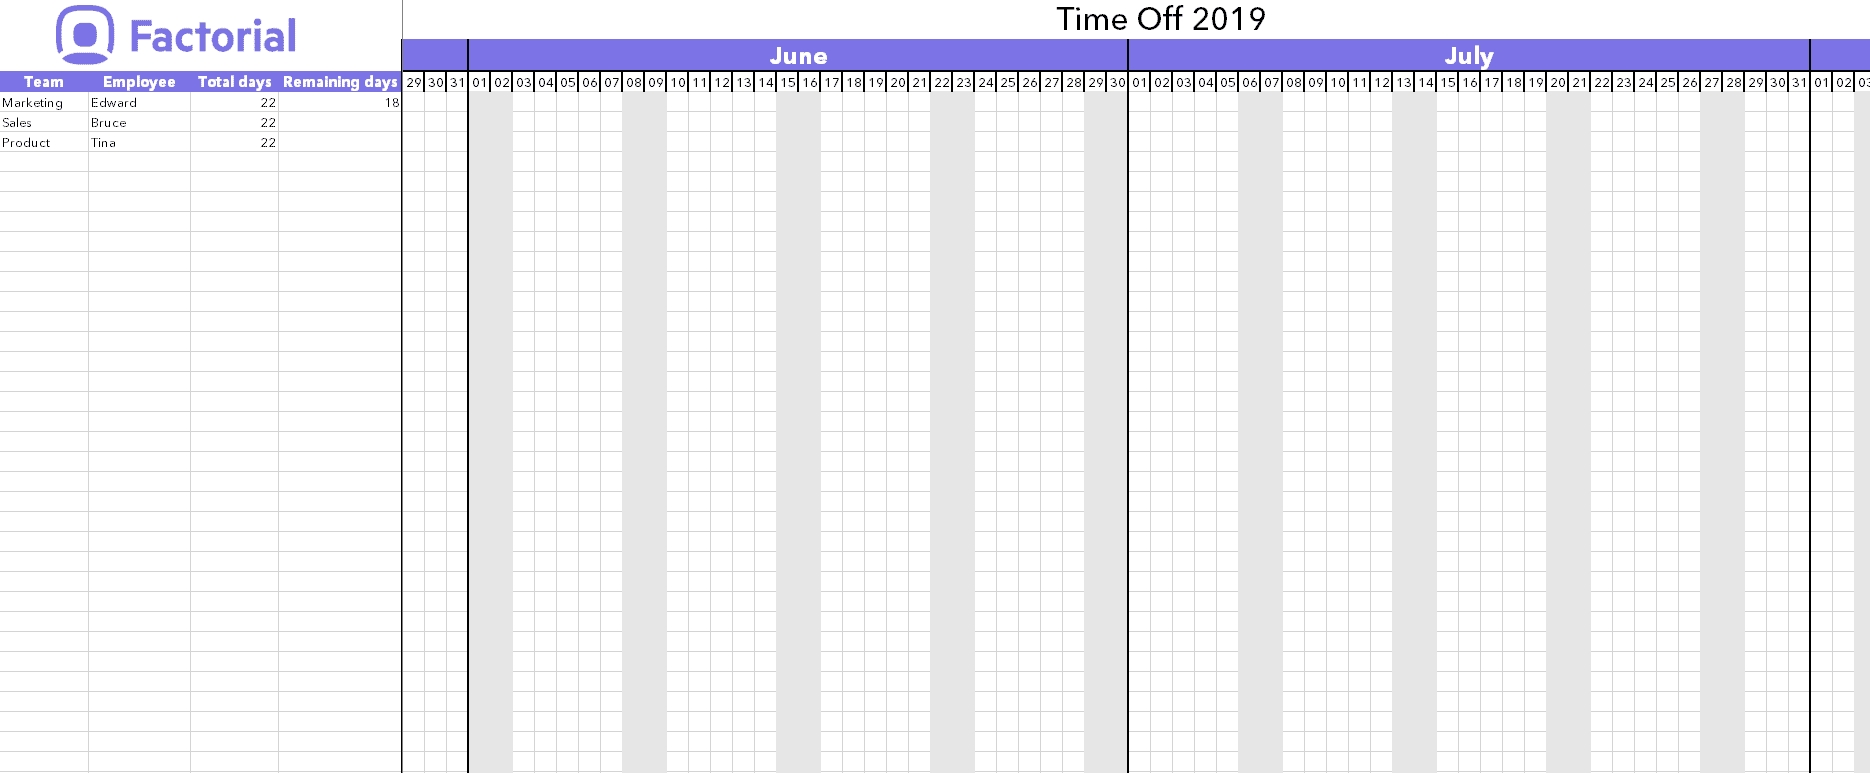 Manage Time Off Requests W/ Free Template | Factorial